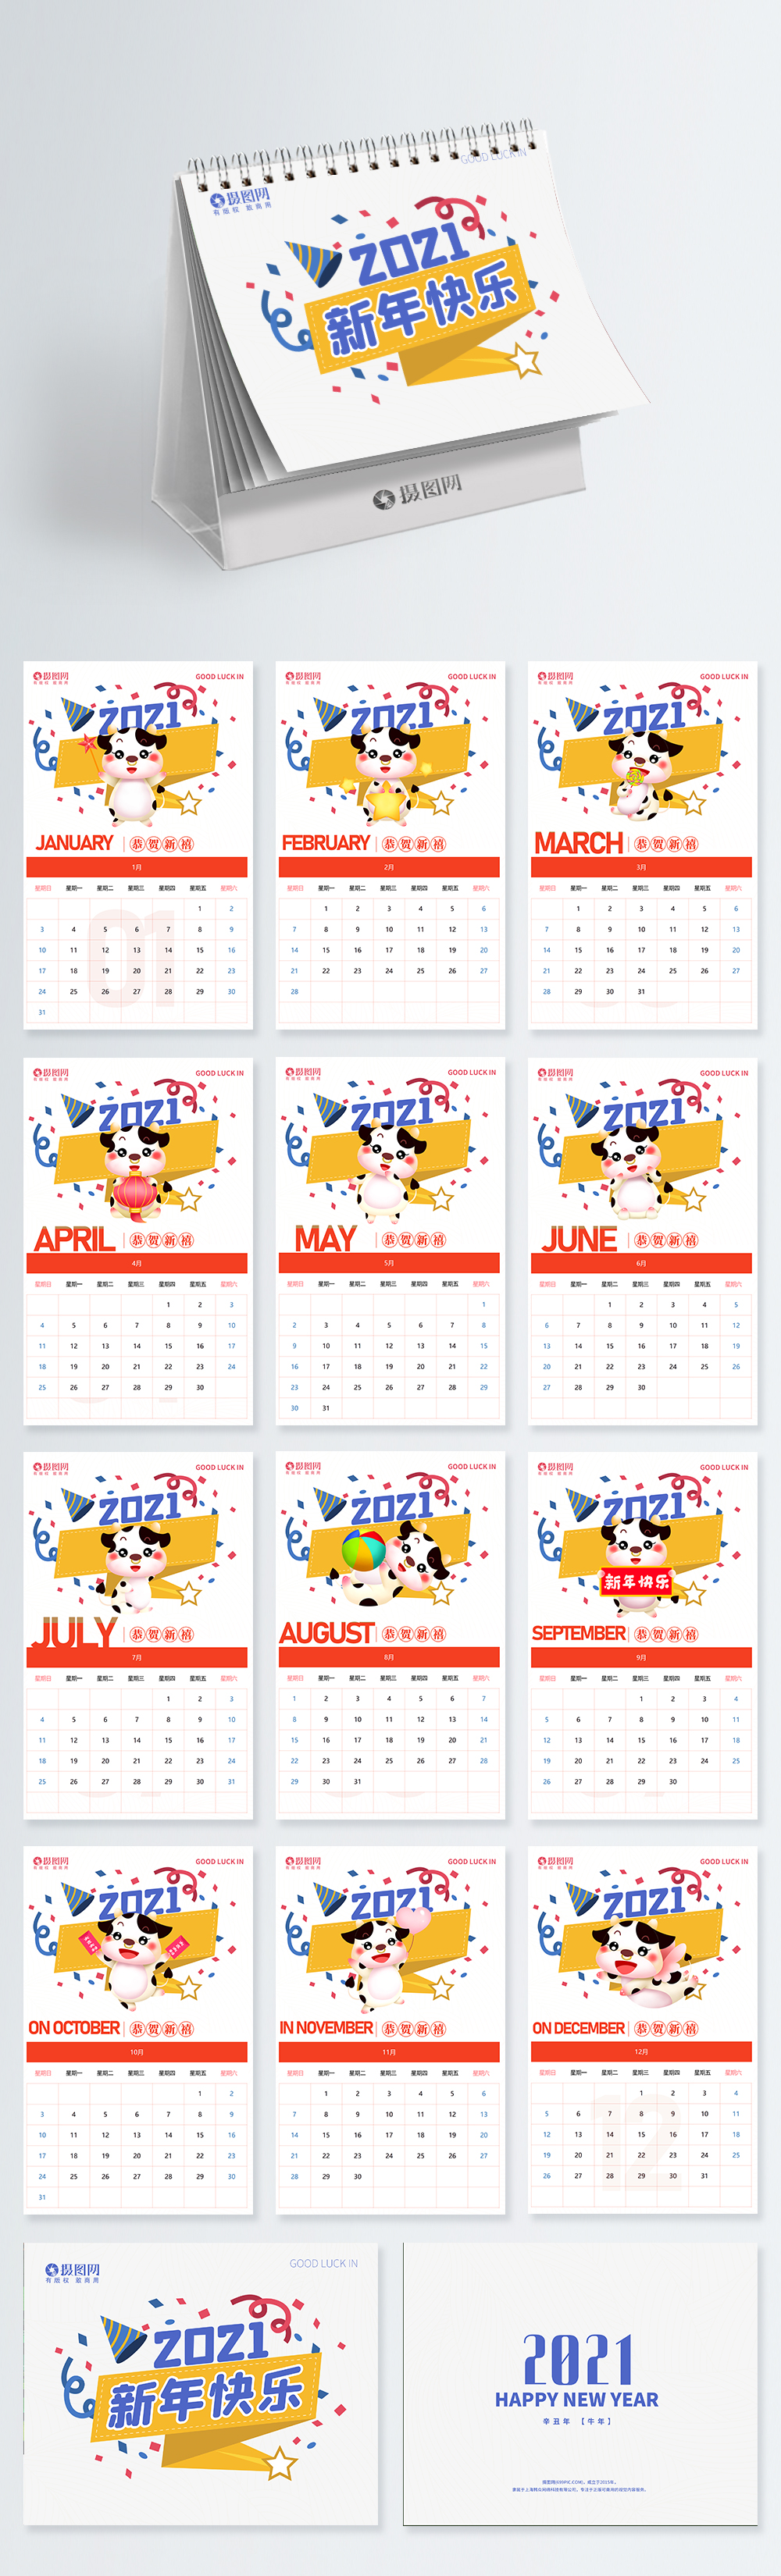 2021 Year Of The Ox Calendar Desk Calendar Template Image Picture Free Download 401776401 Lovepik Com